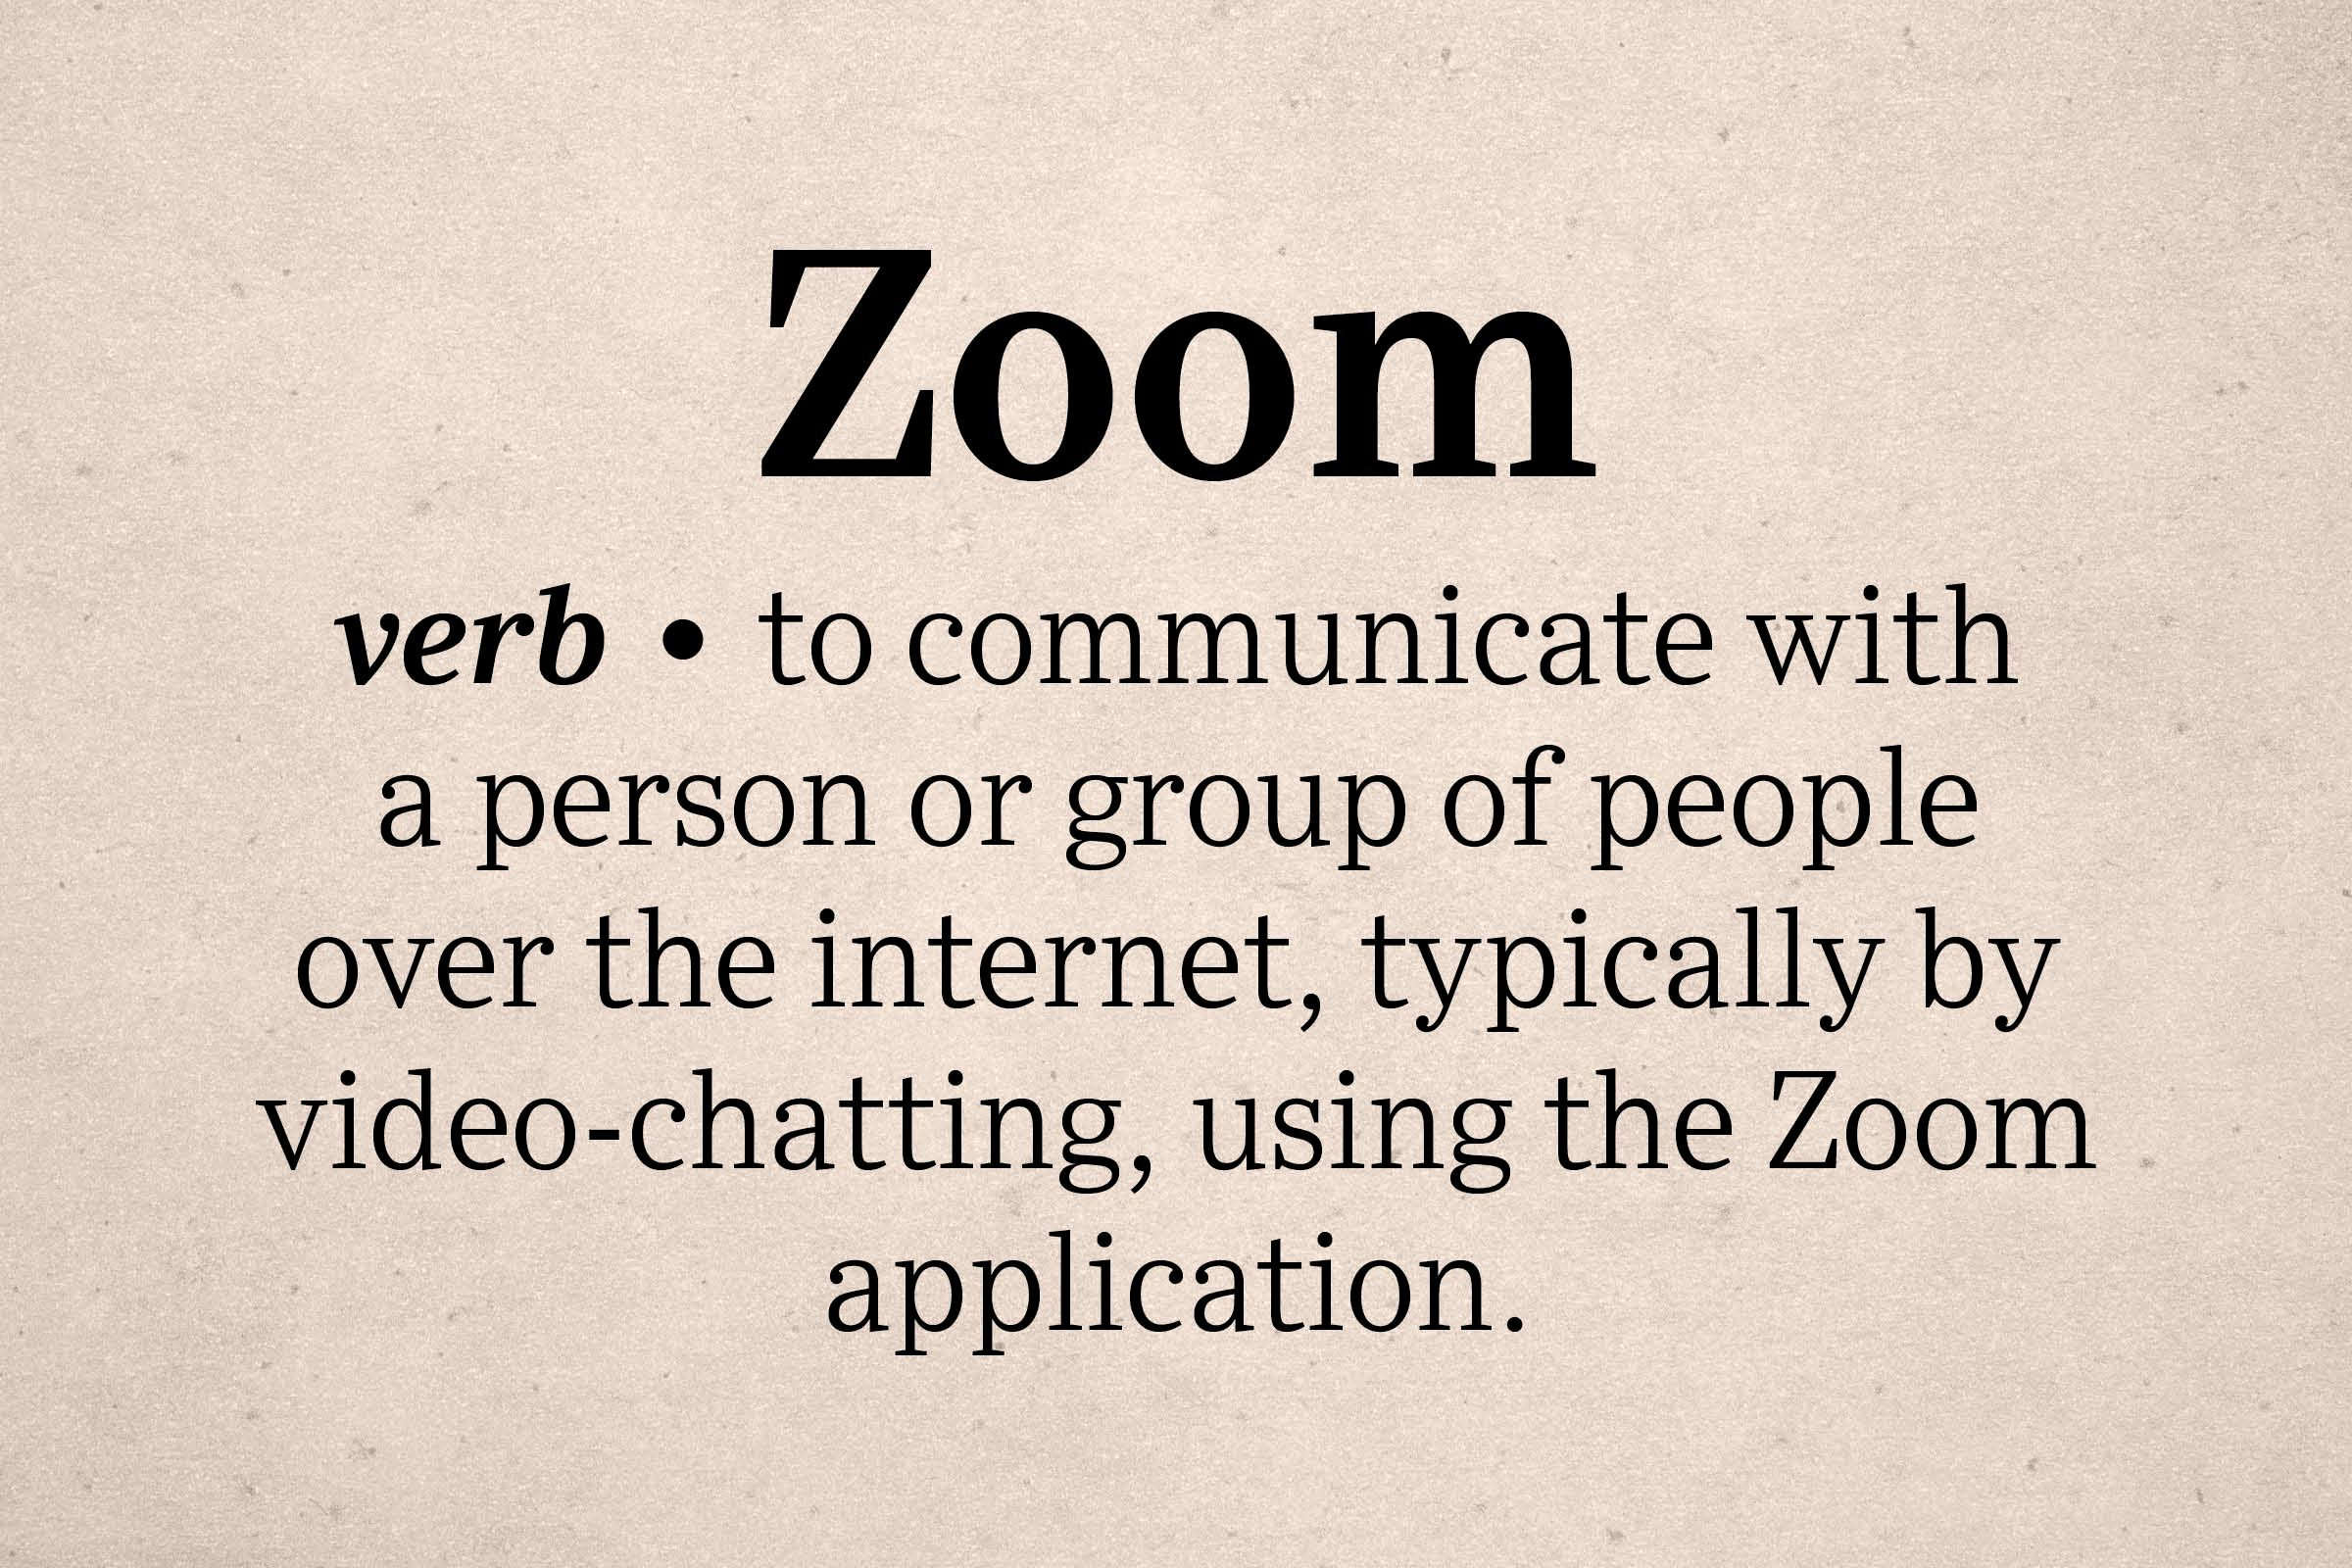 12 Funniest New Words Added to the Dictionary in 2020 - Zoom